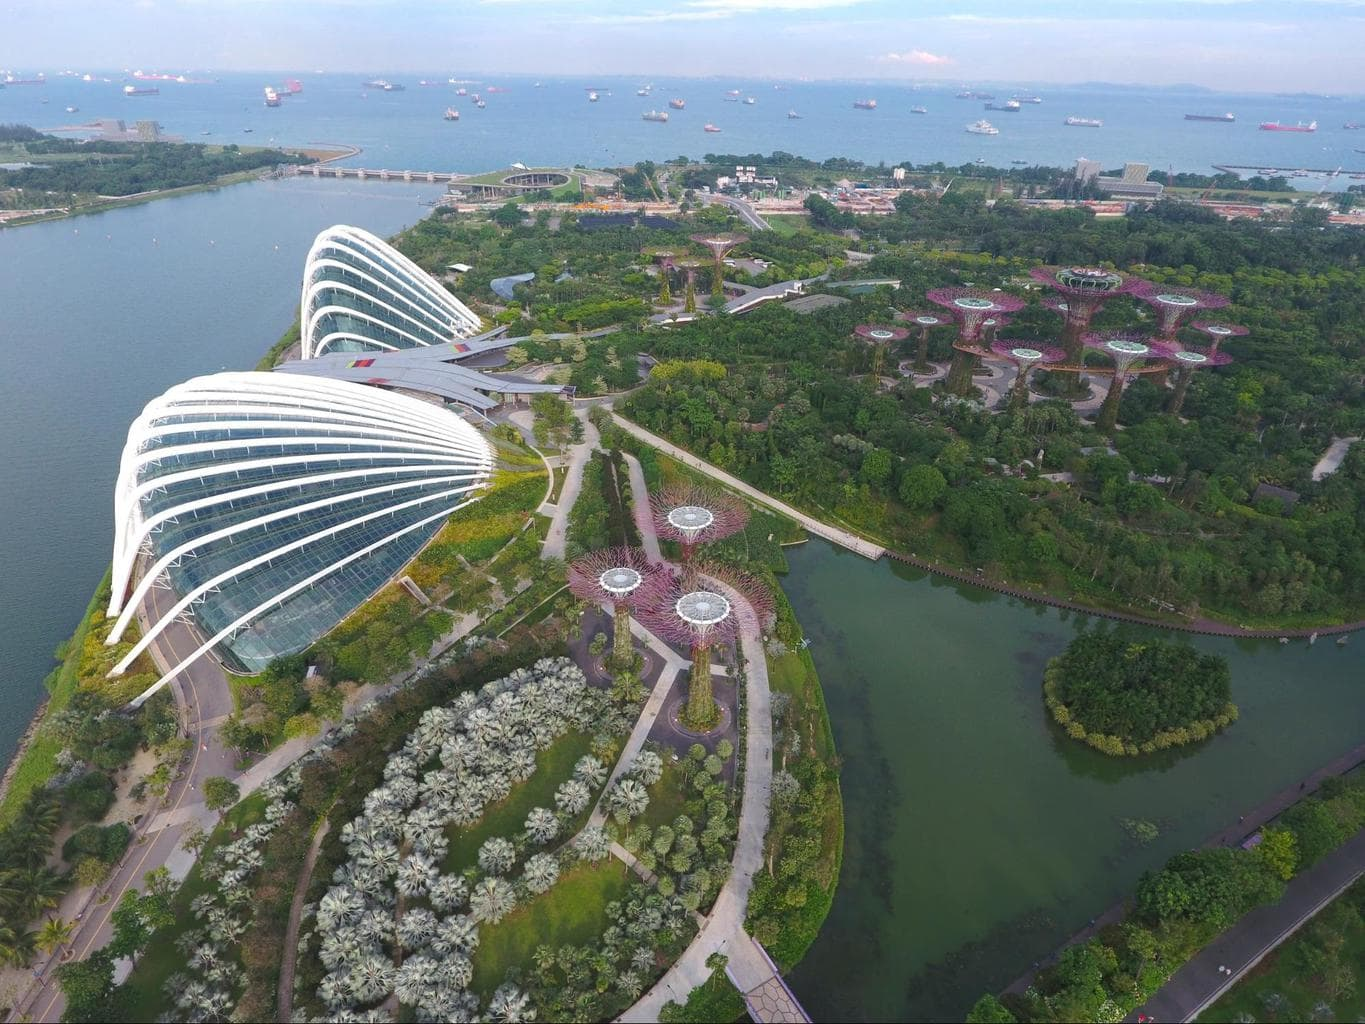 Drone shot of the Conservatories at Gardens by the Bay